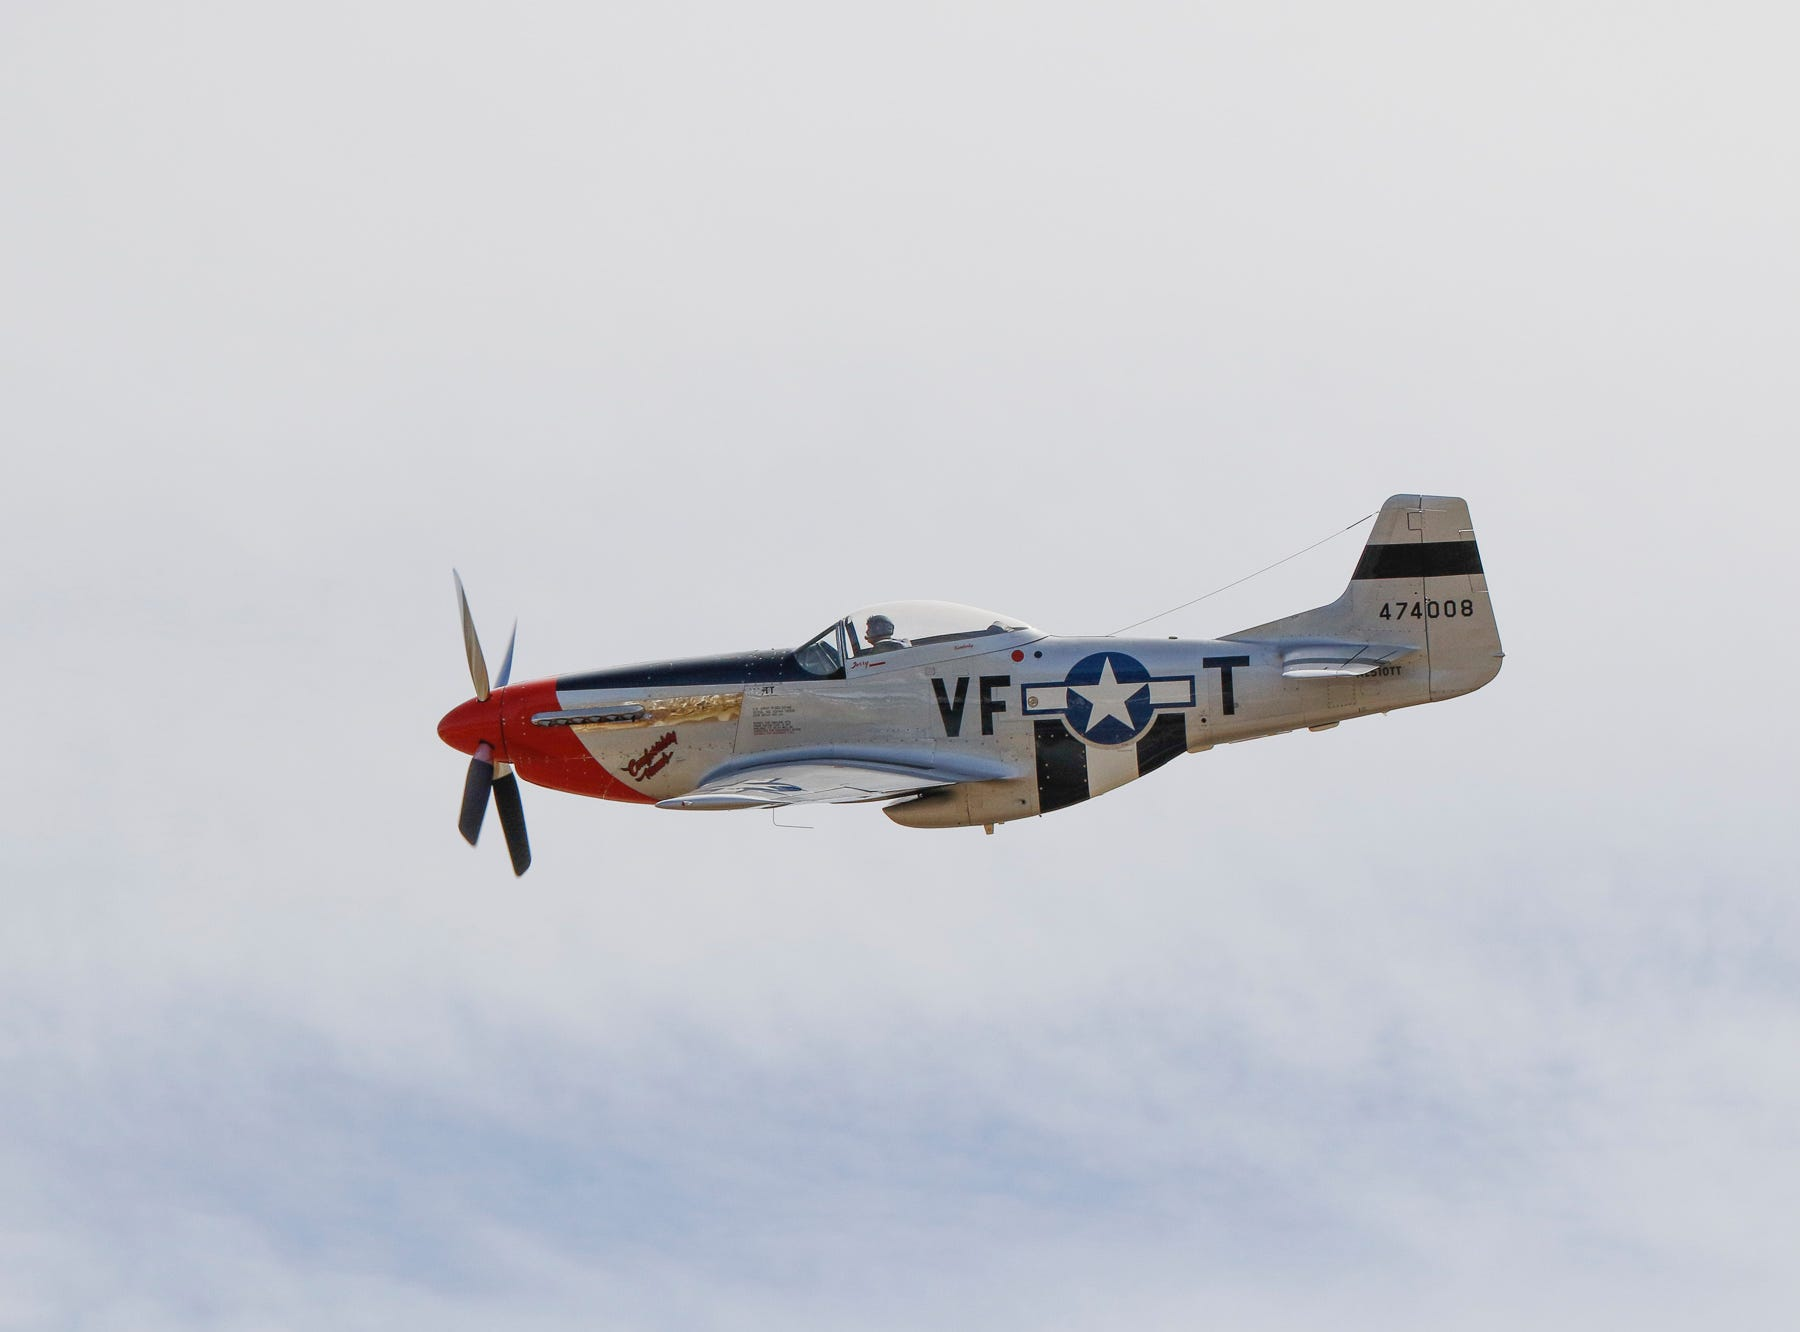 Highlights from the 38th annual California International Airshow, Salinas at the Salinas Municipal Airport on Sunday, September 30, 2018 in Salinas, Calif.